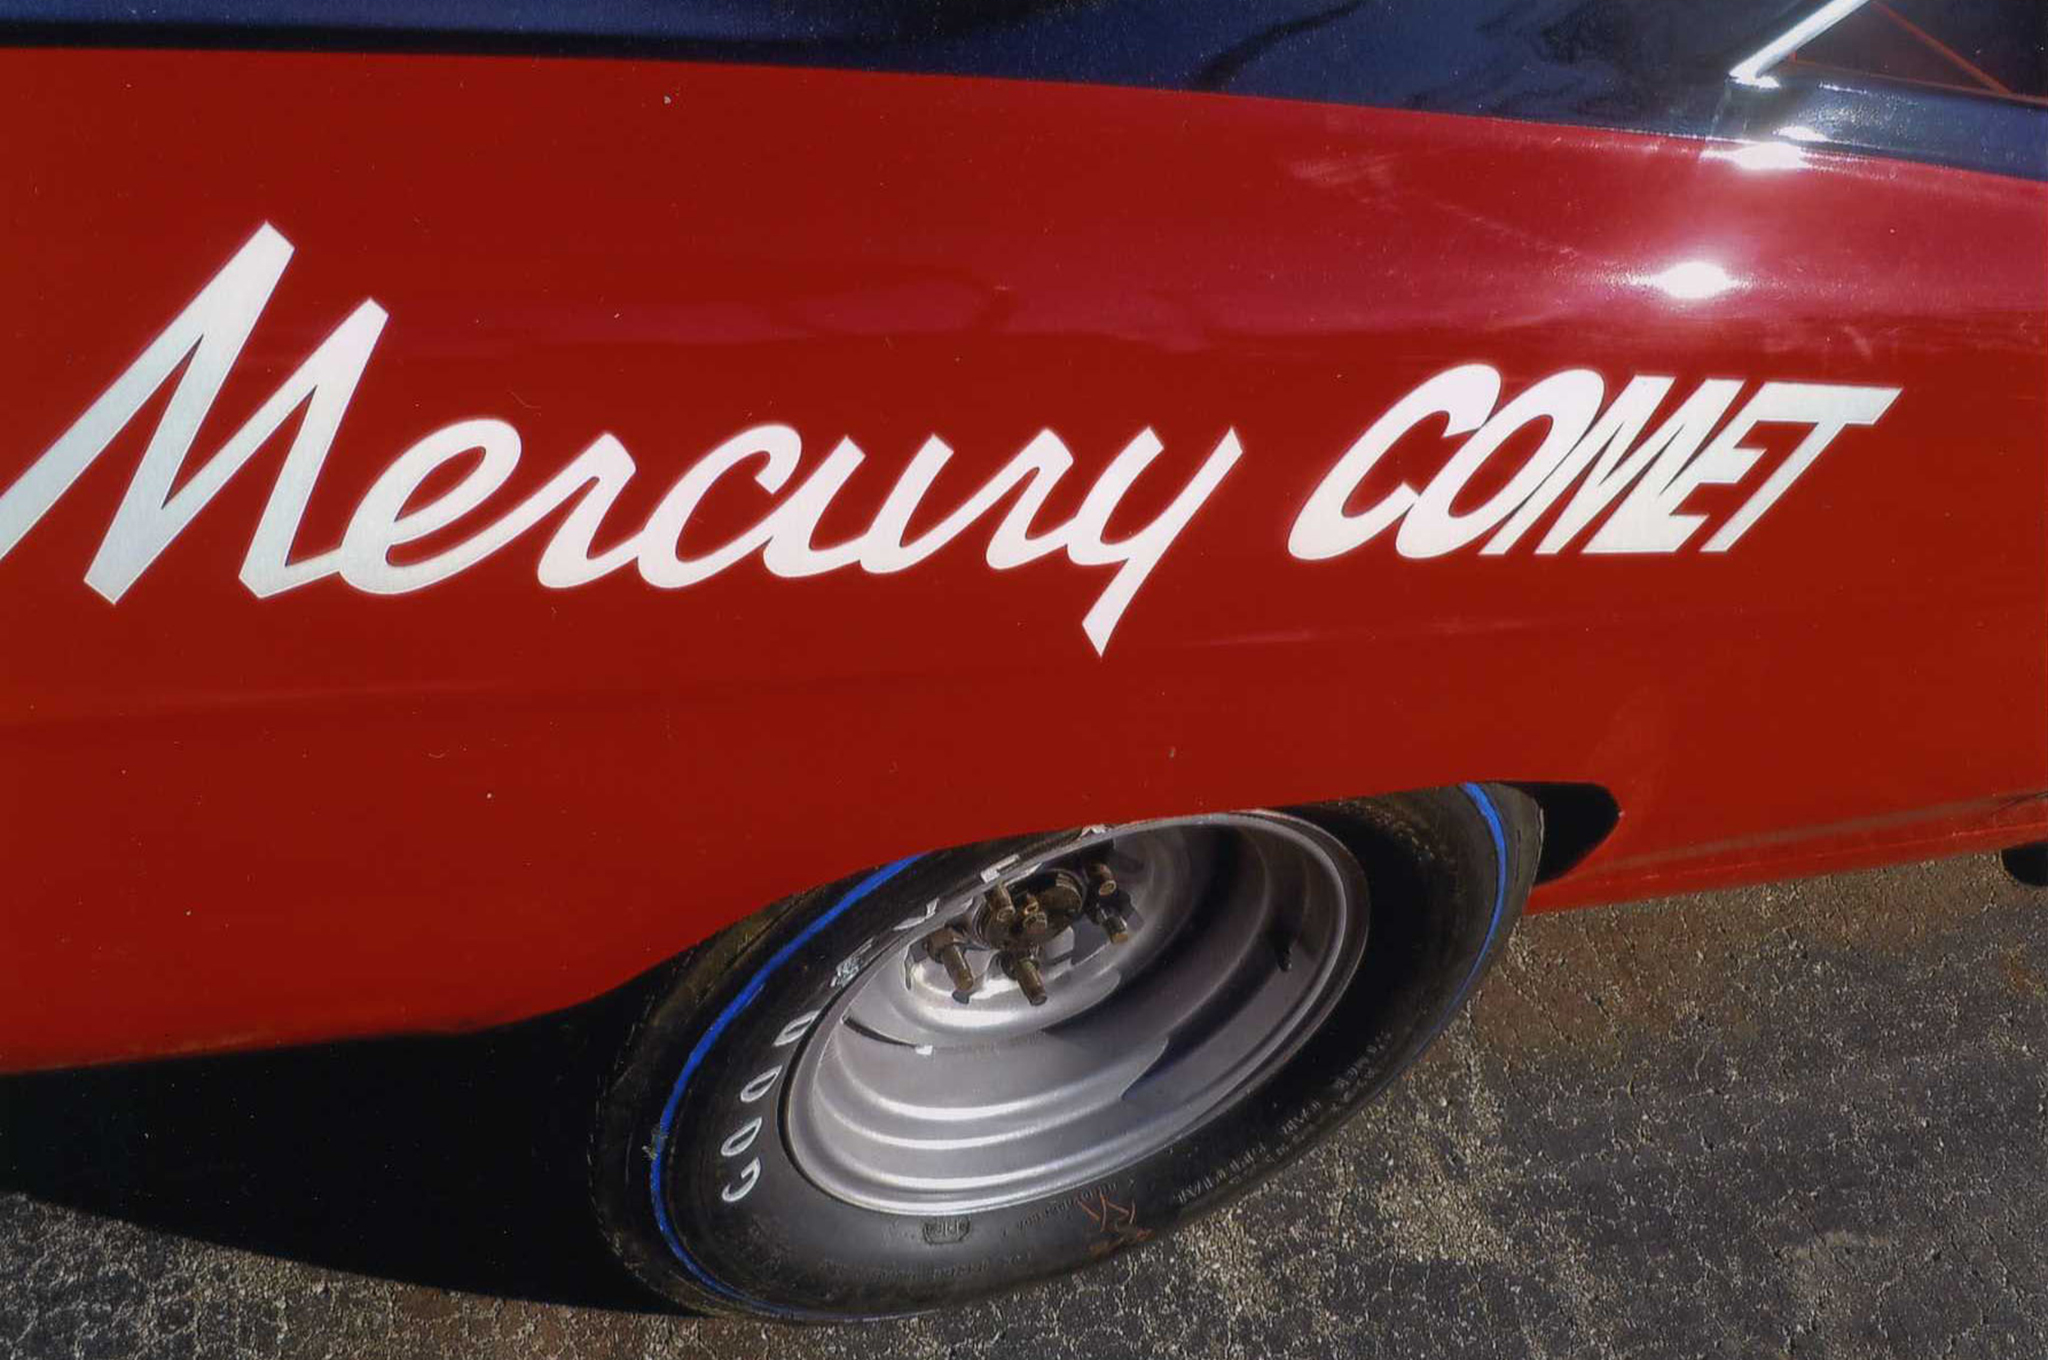 "The Large ""Mercury Comet"" on each rear quarter made sure that potential buyers could easily read the words and recognize the type of car it was, even at speed on the track. Remember, this was the height of the 'Win on Sunday, Sell on Monday"" era."